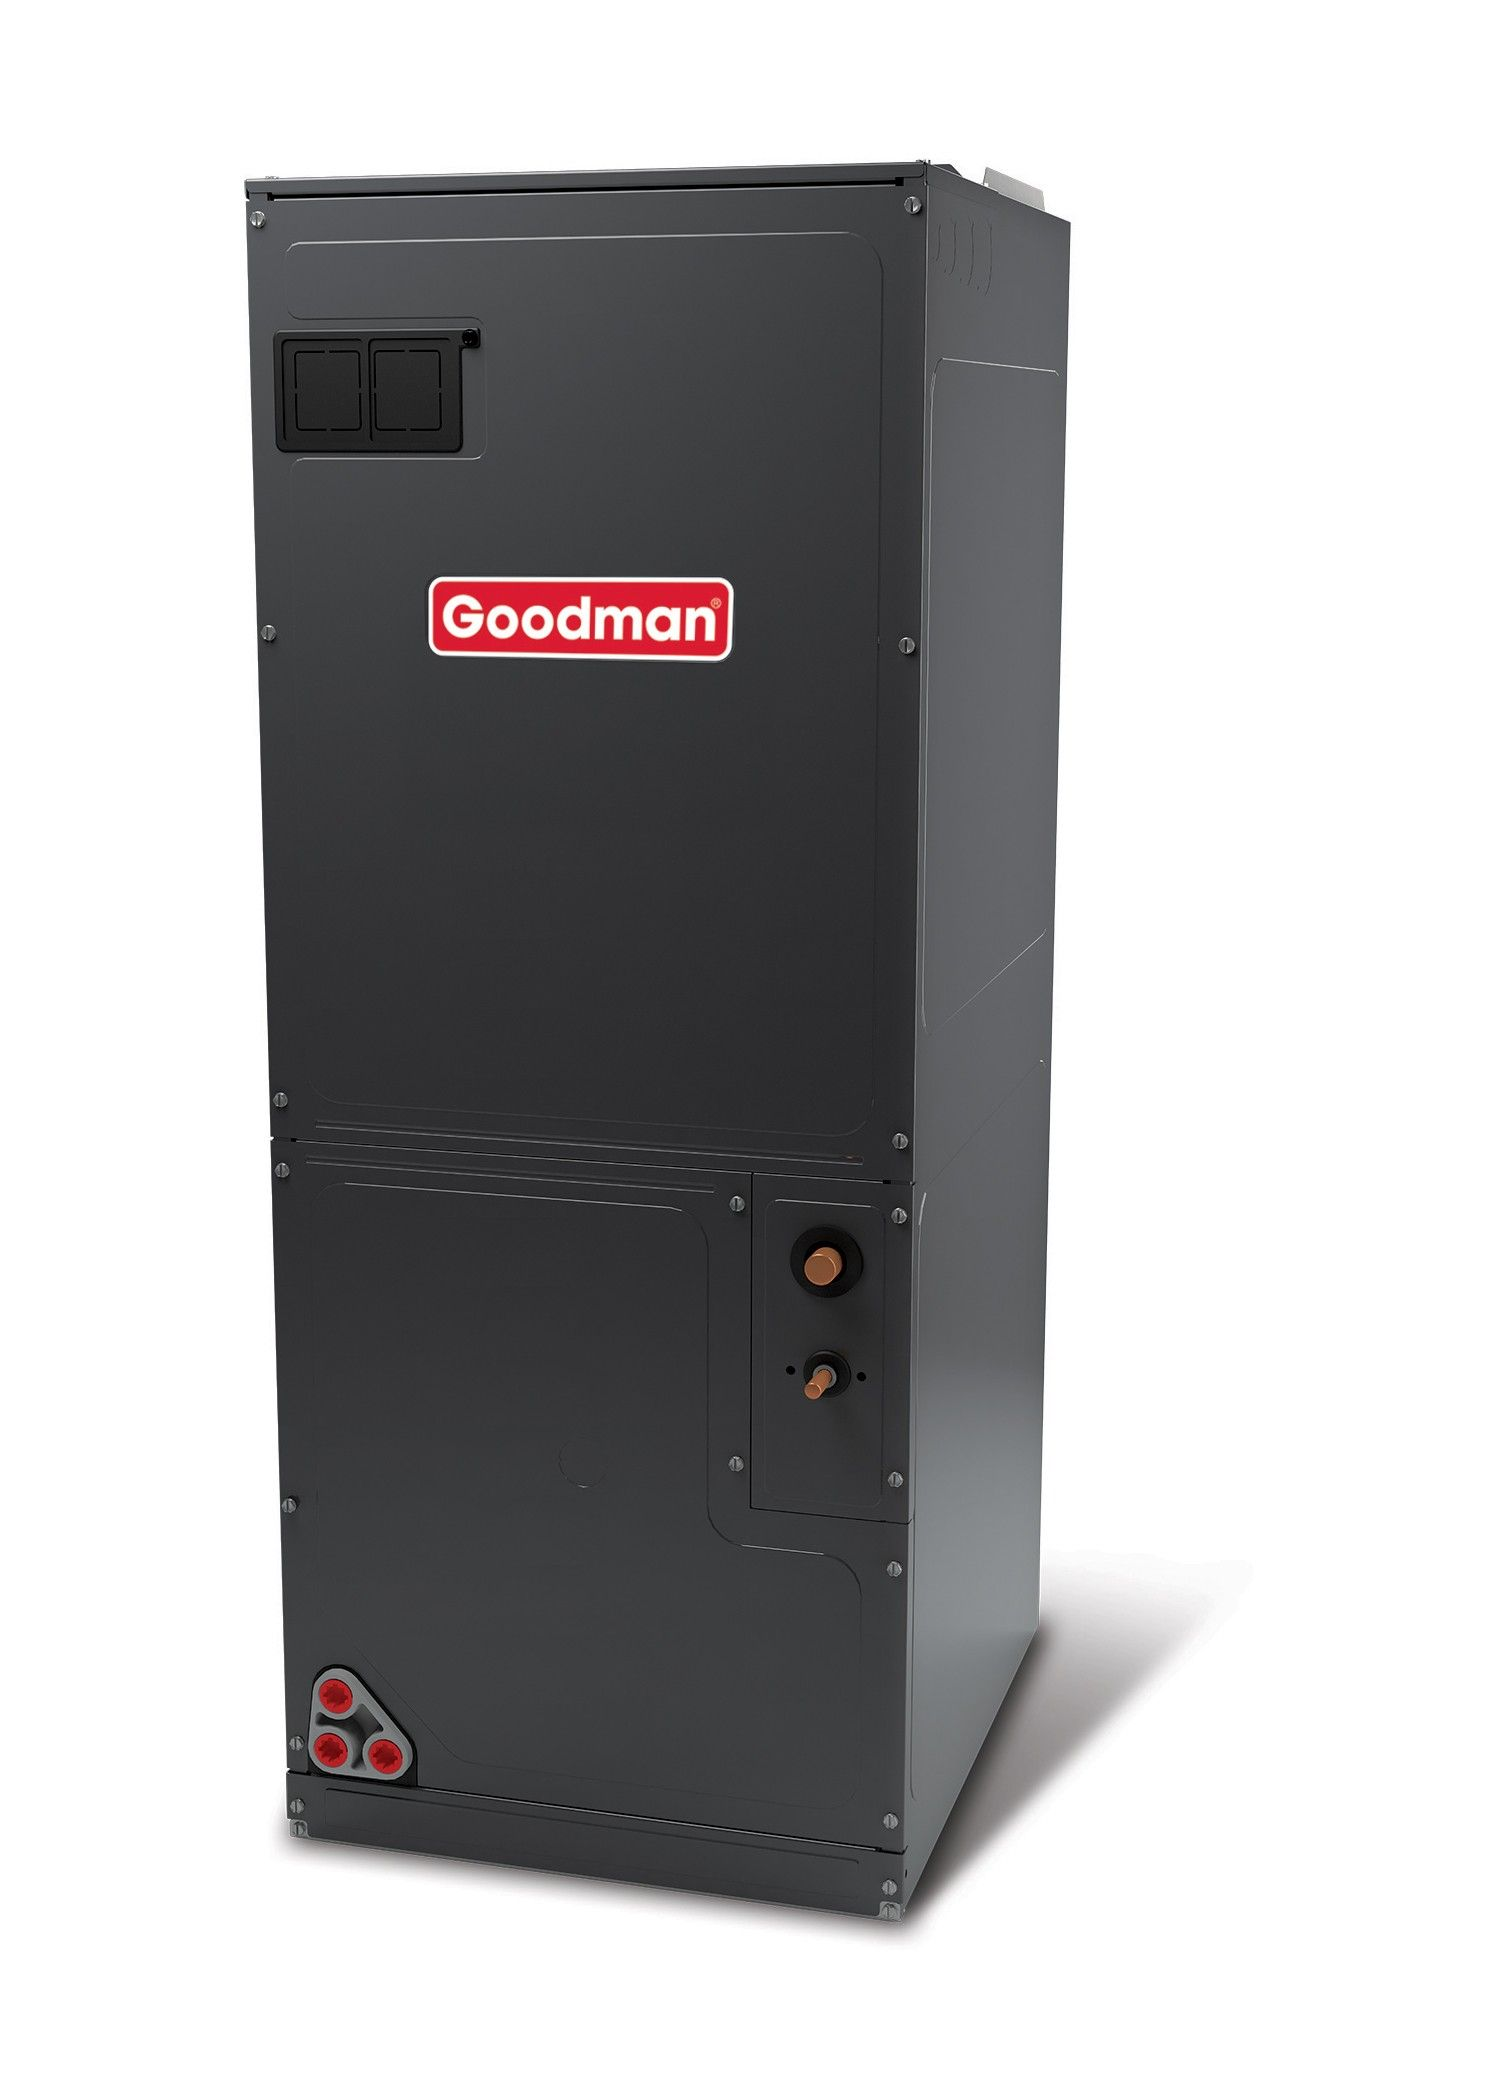 Goodman 3.5 Ton ASPT High Efficincy Multiposition Air Handler